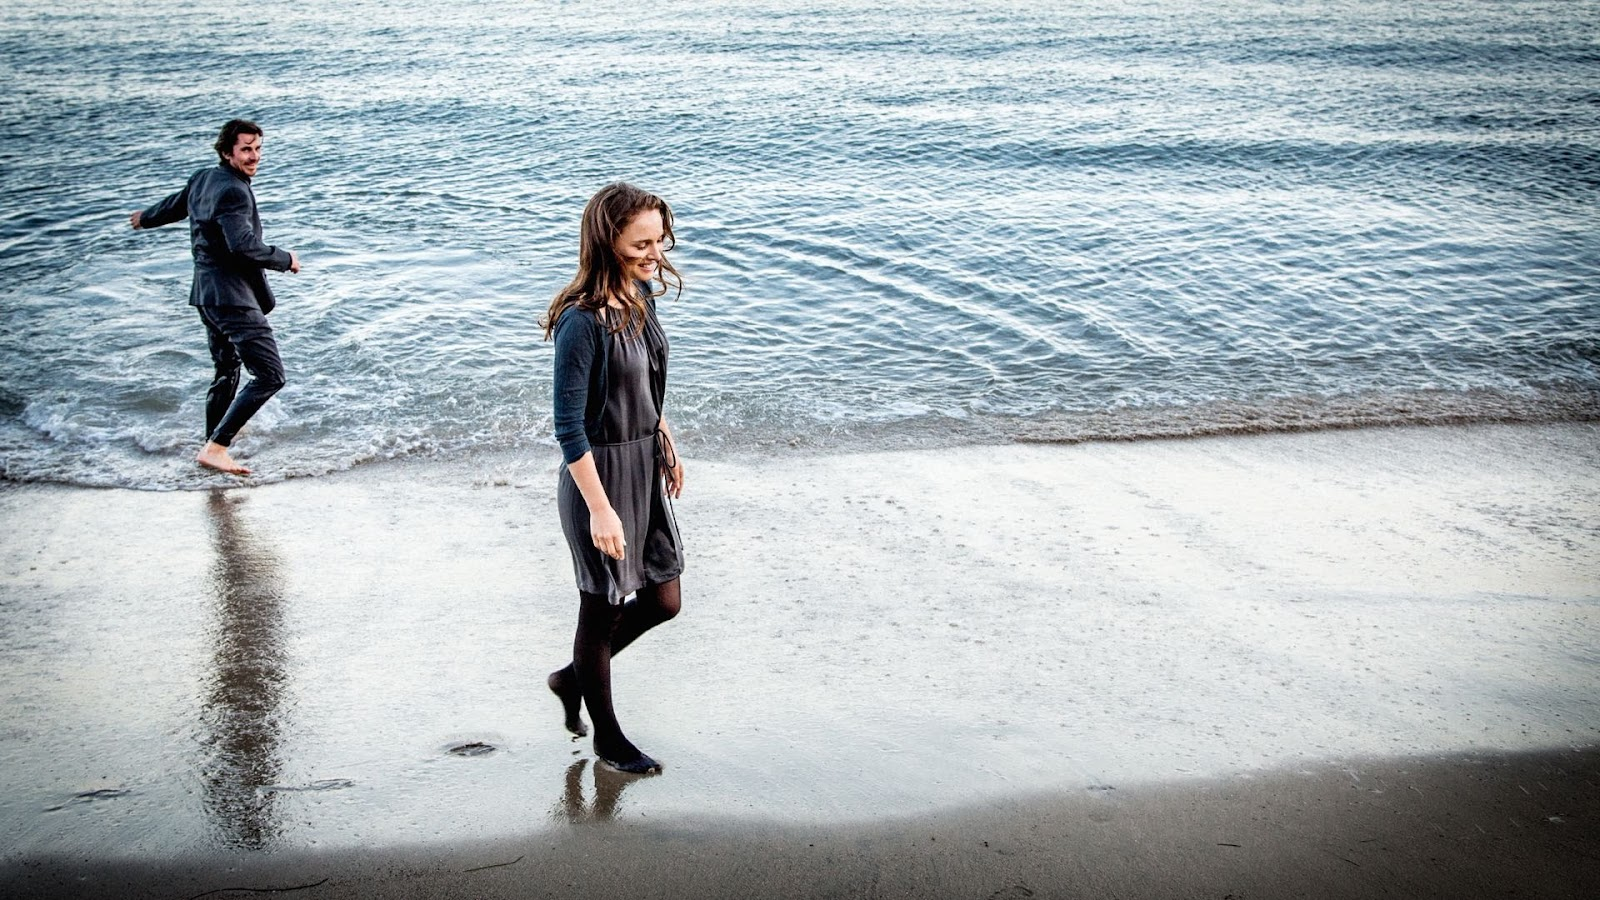 Knight of Cups Christian Bale and Natalie Portman at the beach